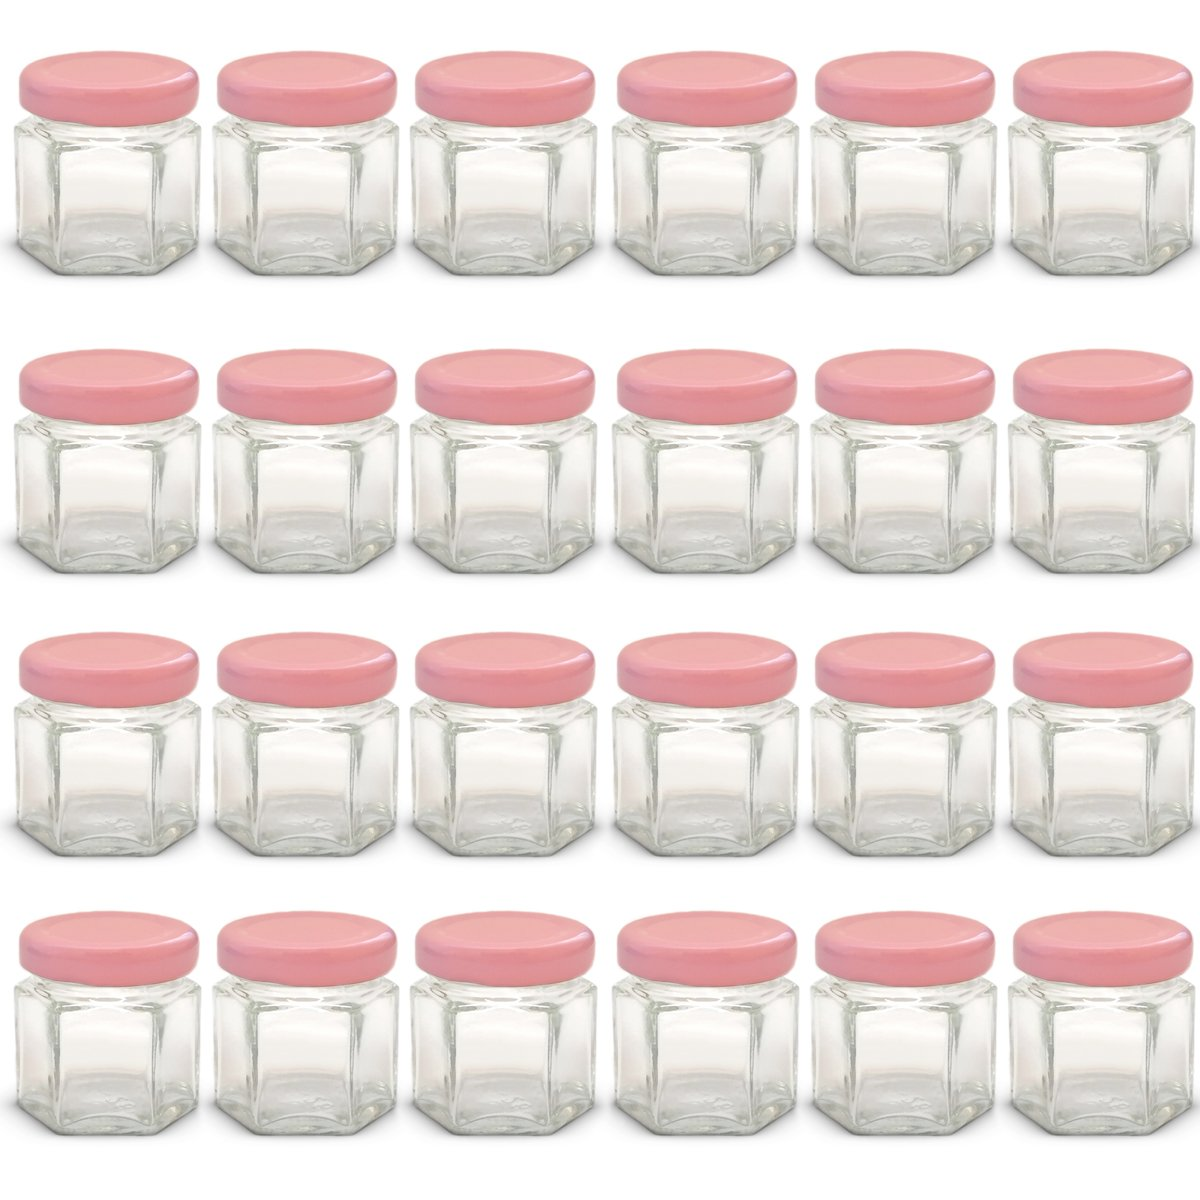 1.5 oz Hexagon Mini Glass Jars with Pink Lids and Labels (Pack of 24)